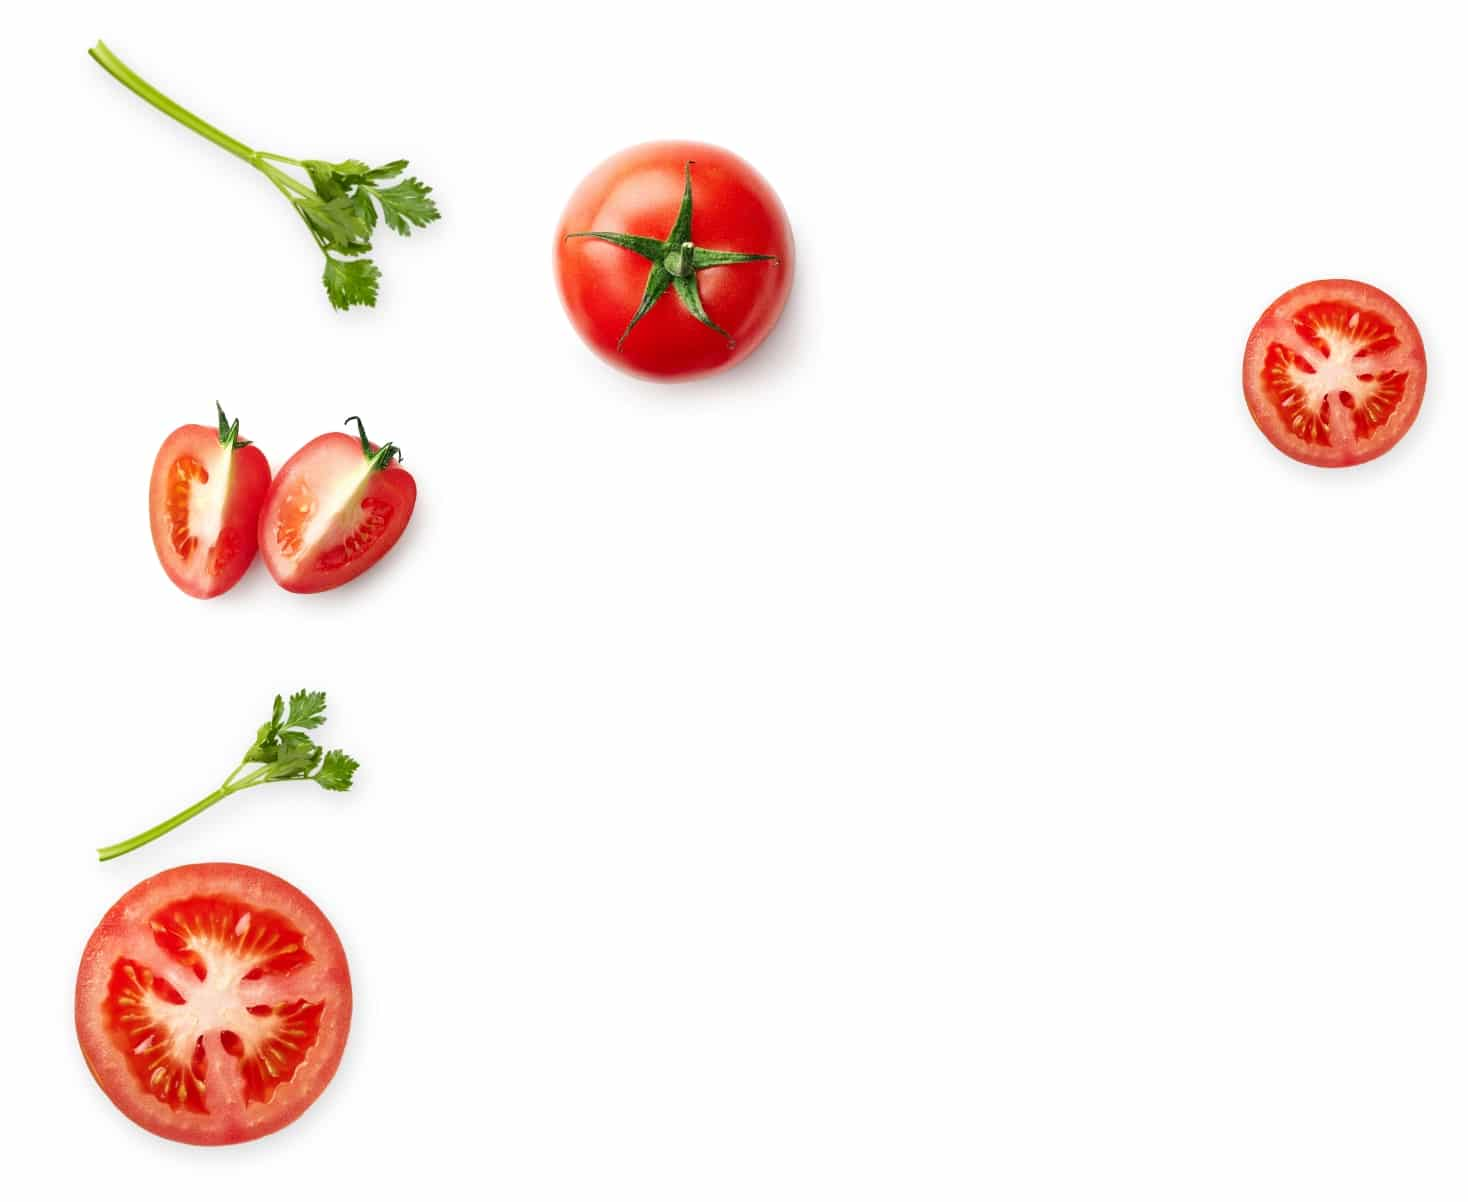 Fresh tomatoes with spices: the most important ingredients of the best bloody mary mix such as Smokin' Mary